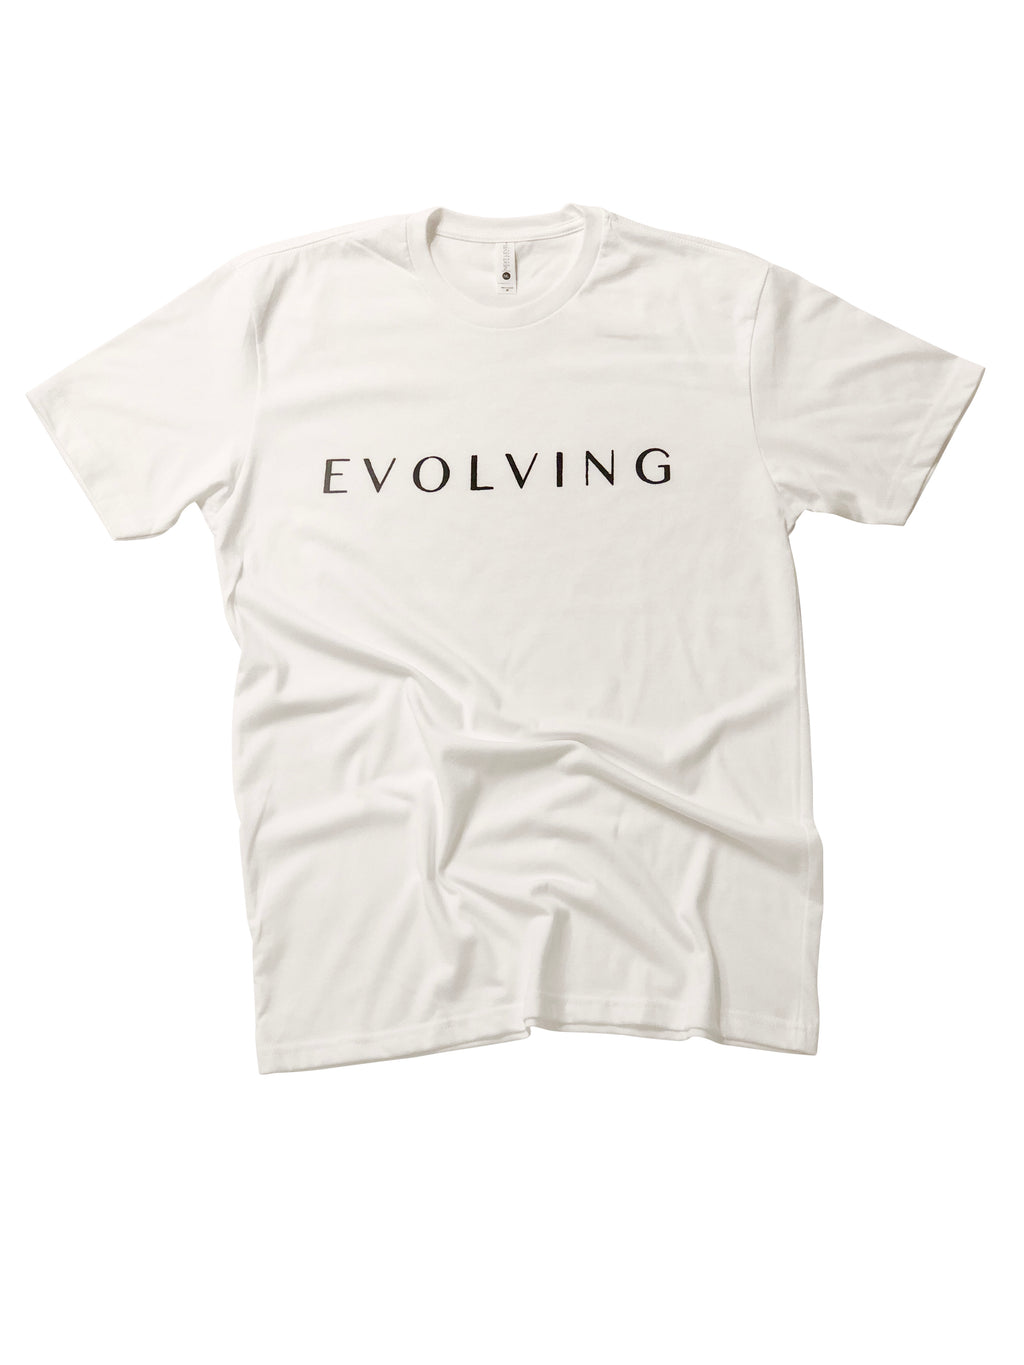 Evolving Shirt in White - Trunk Series, LLC